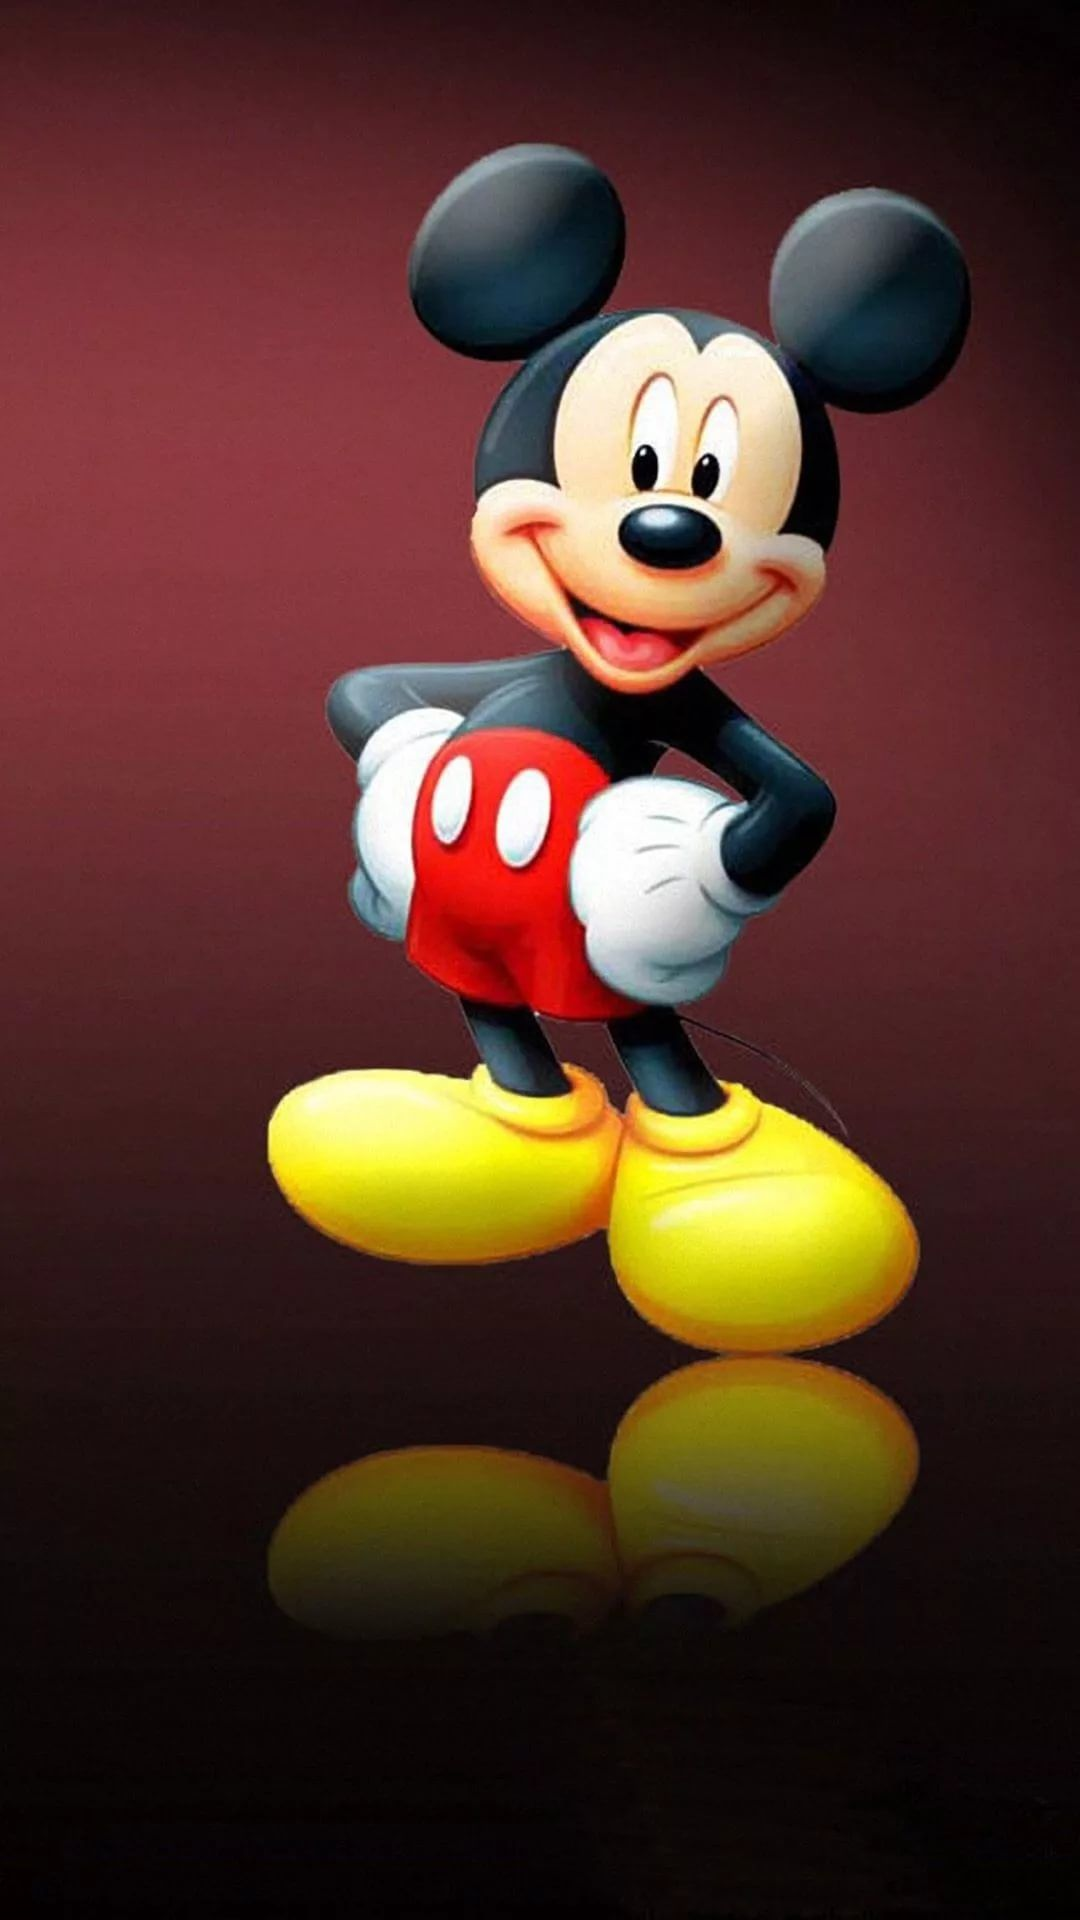 Mickey Mouse iPhone 5 wallpaper